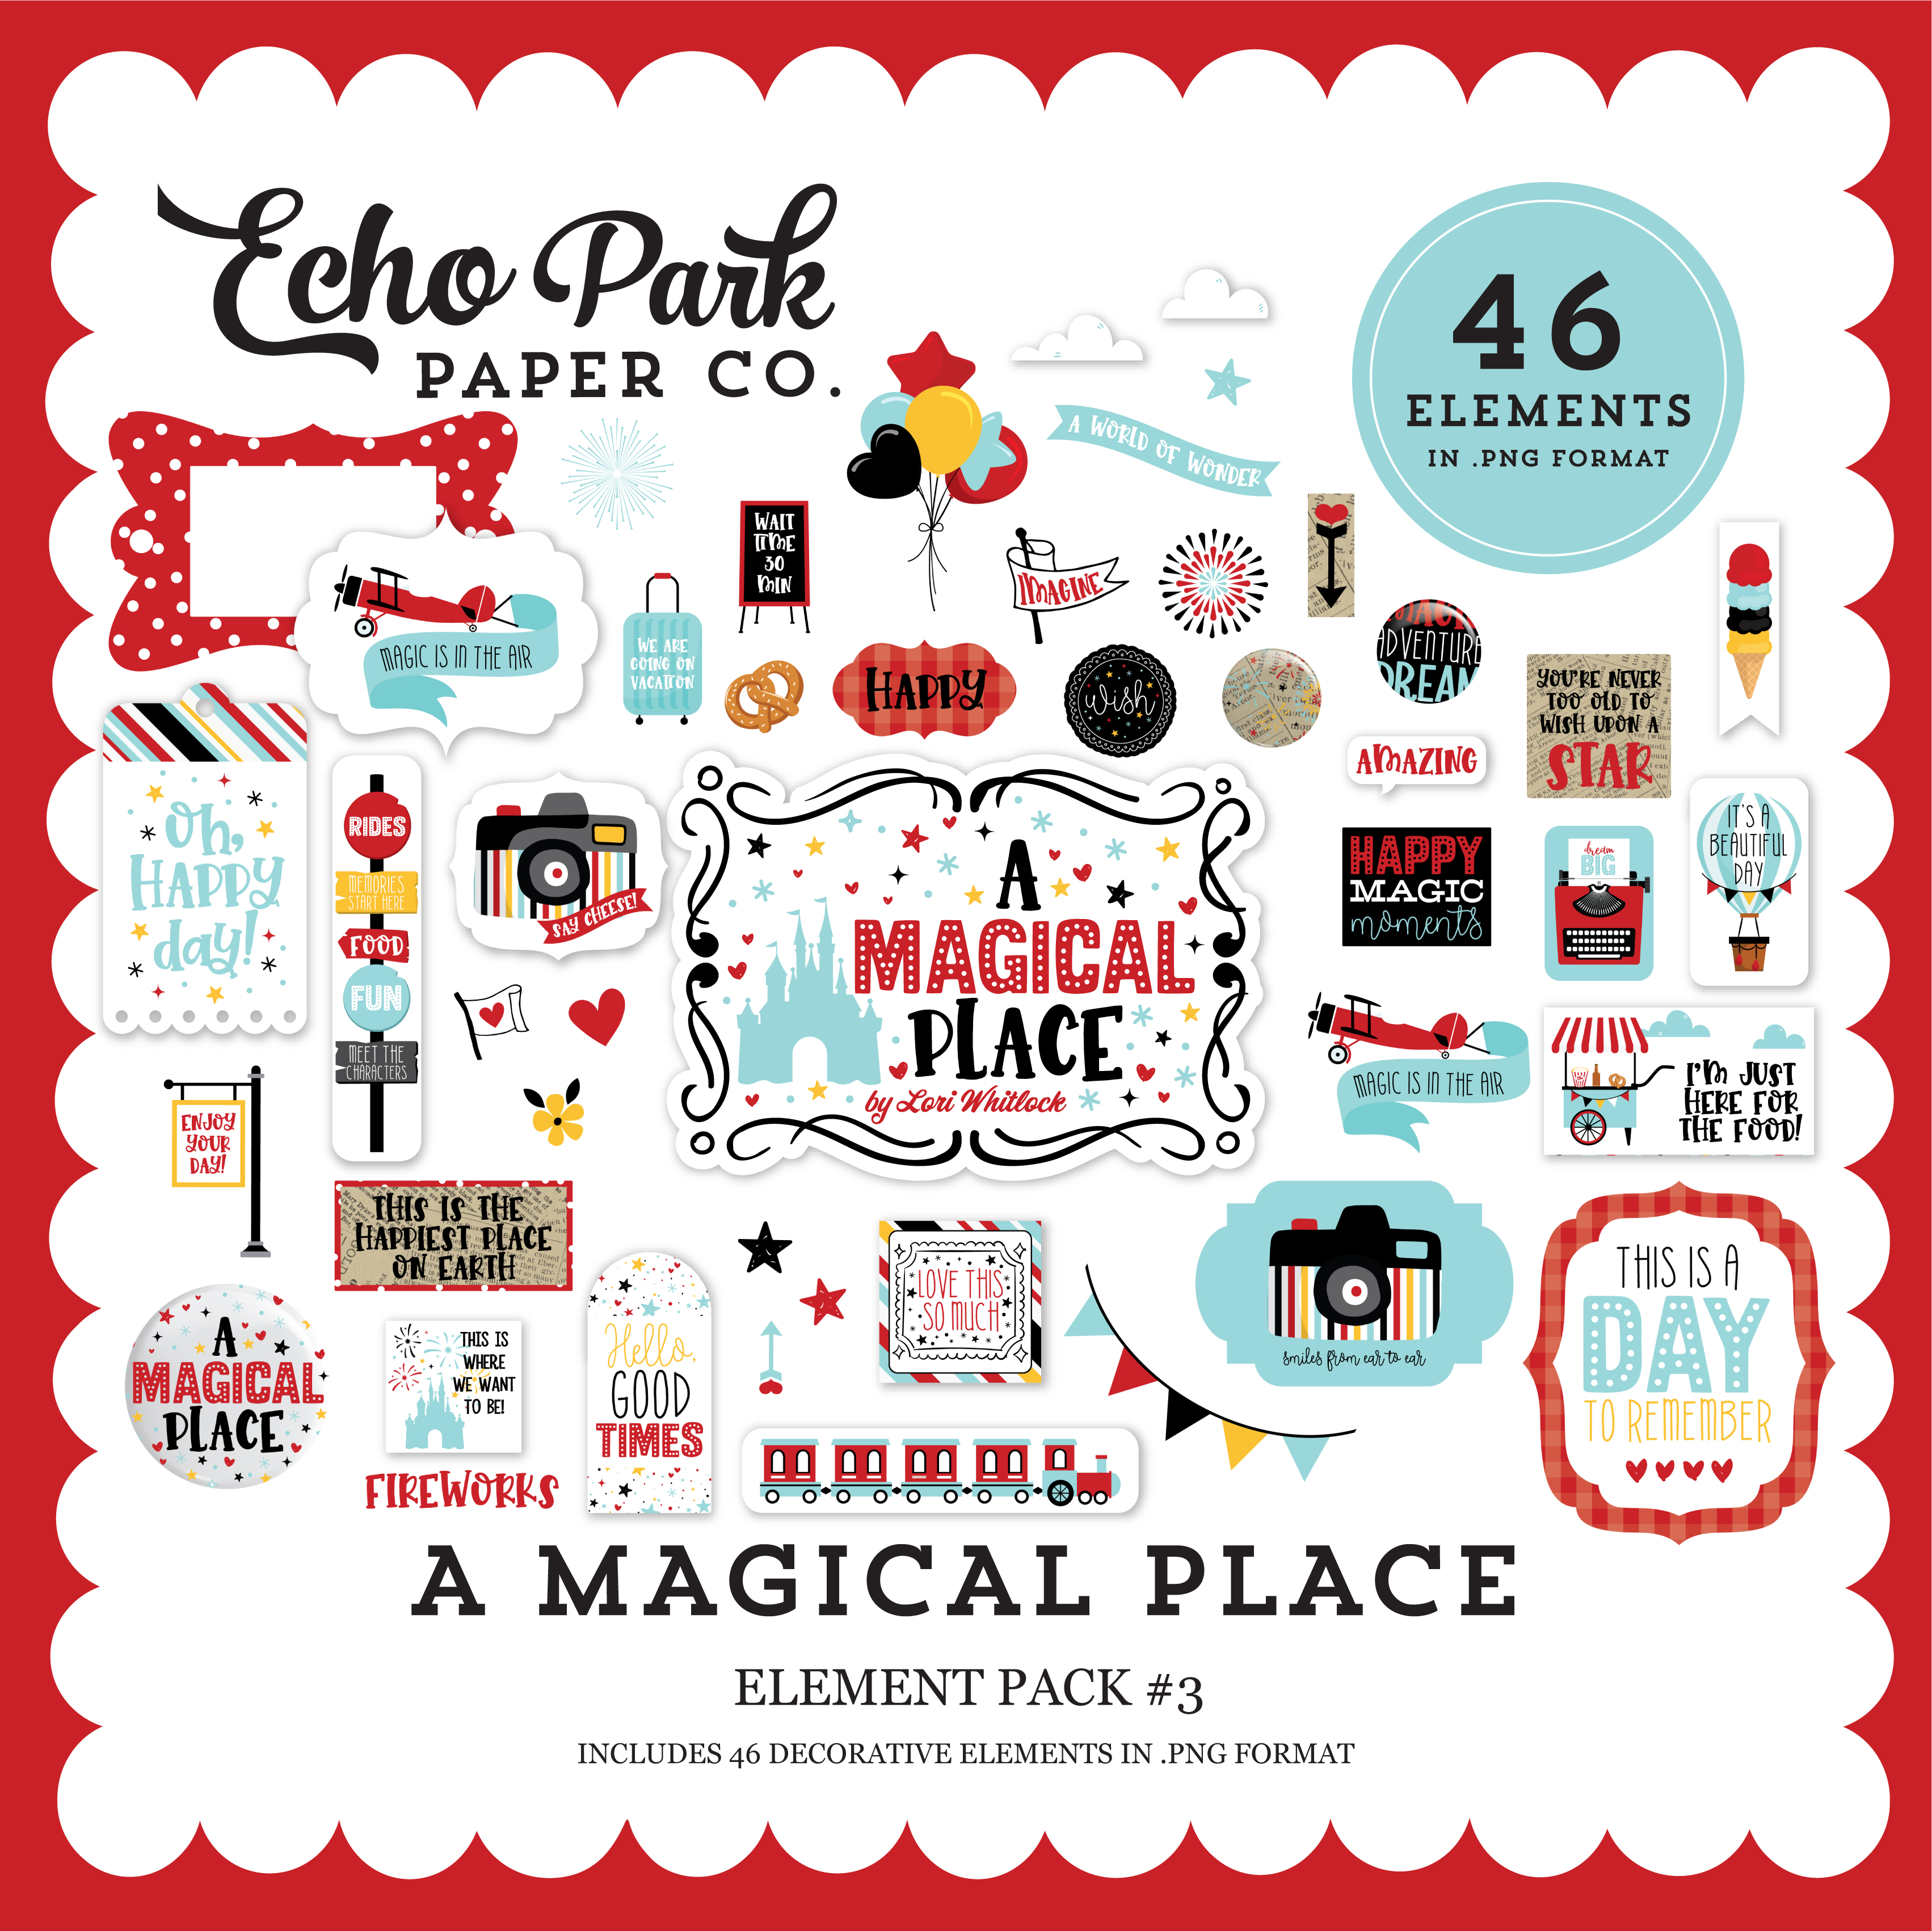 A Magical Place Element Pack #3